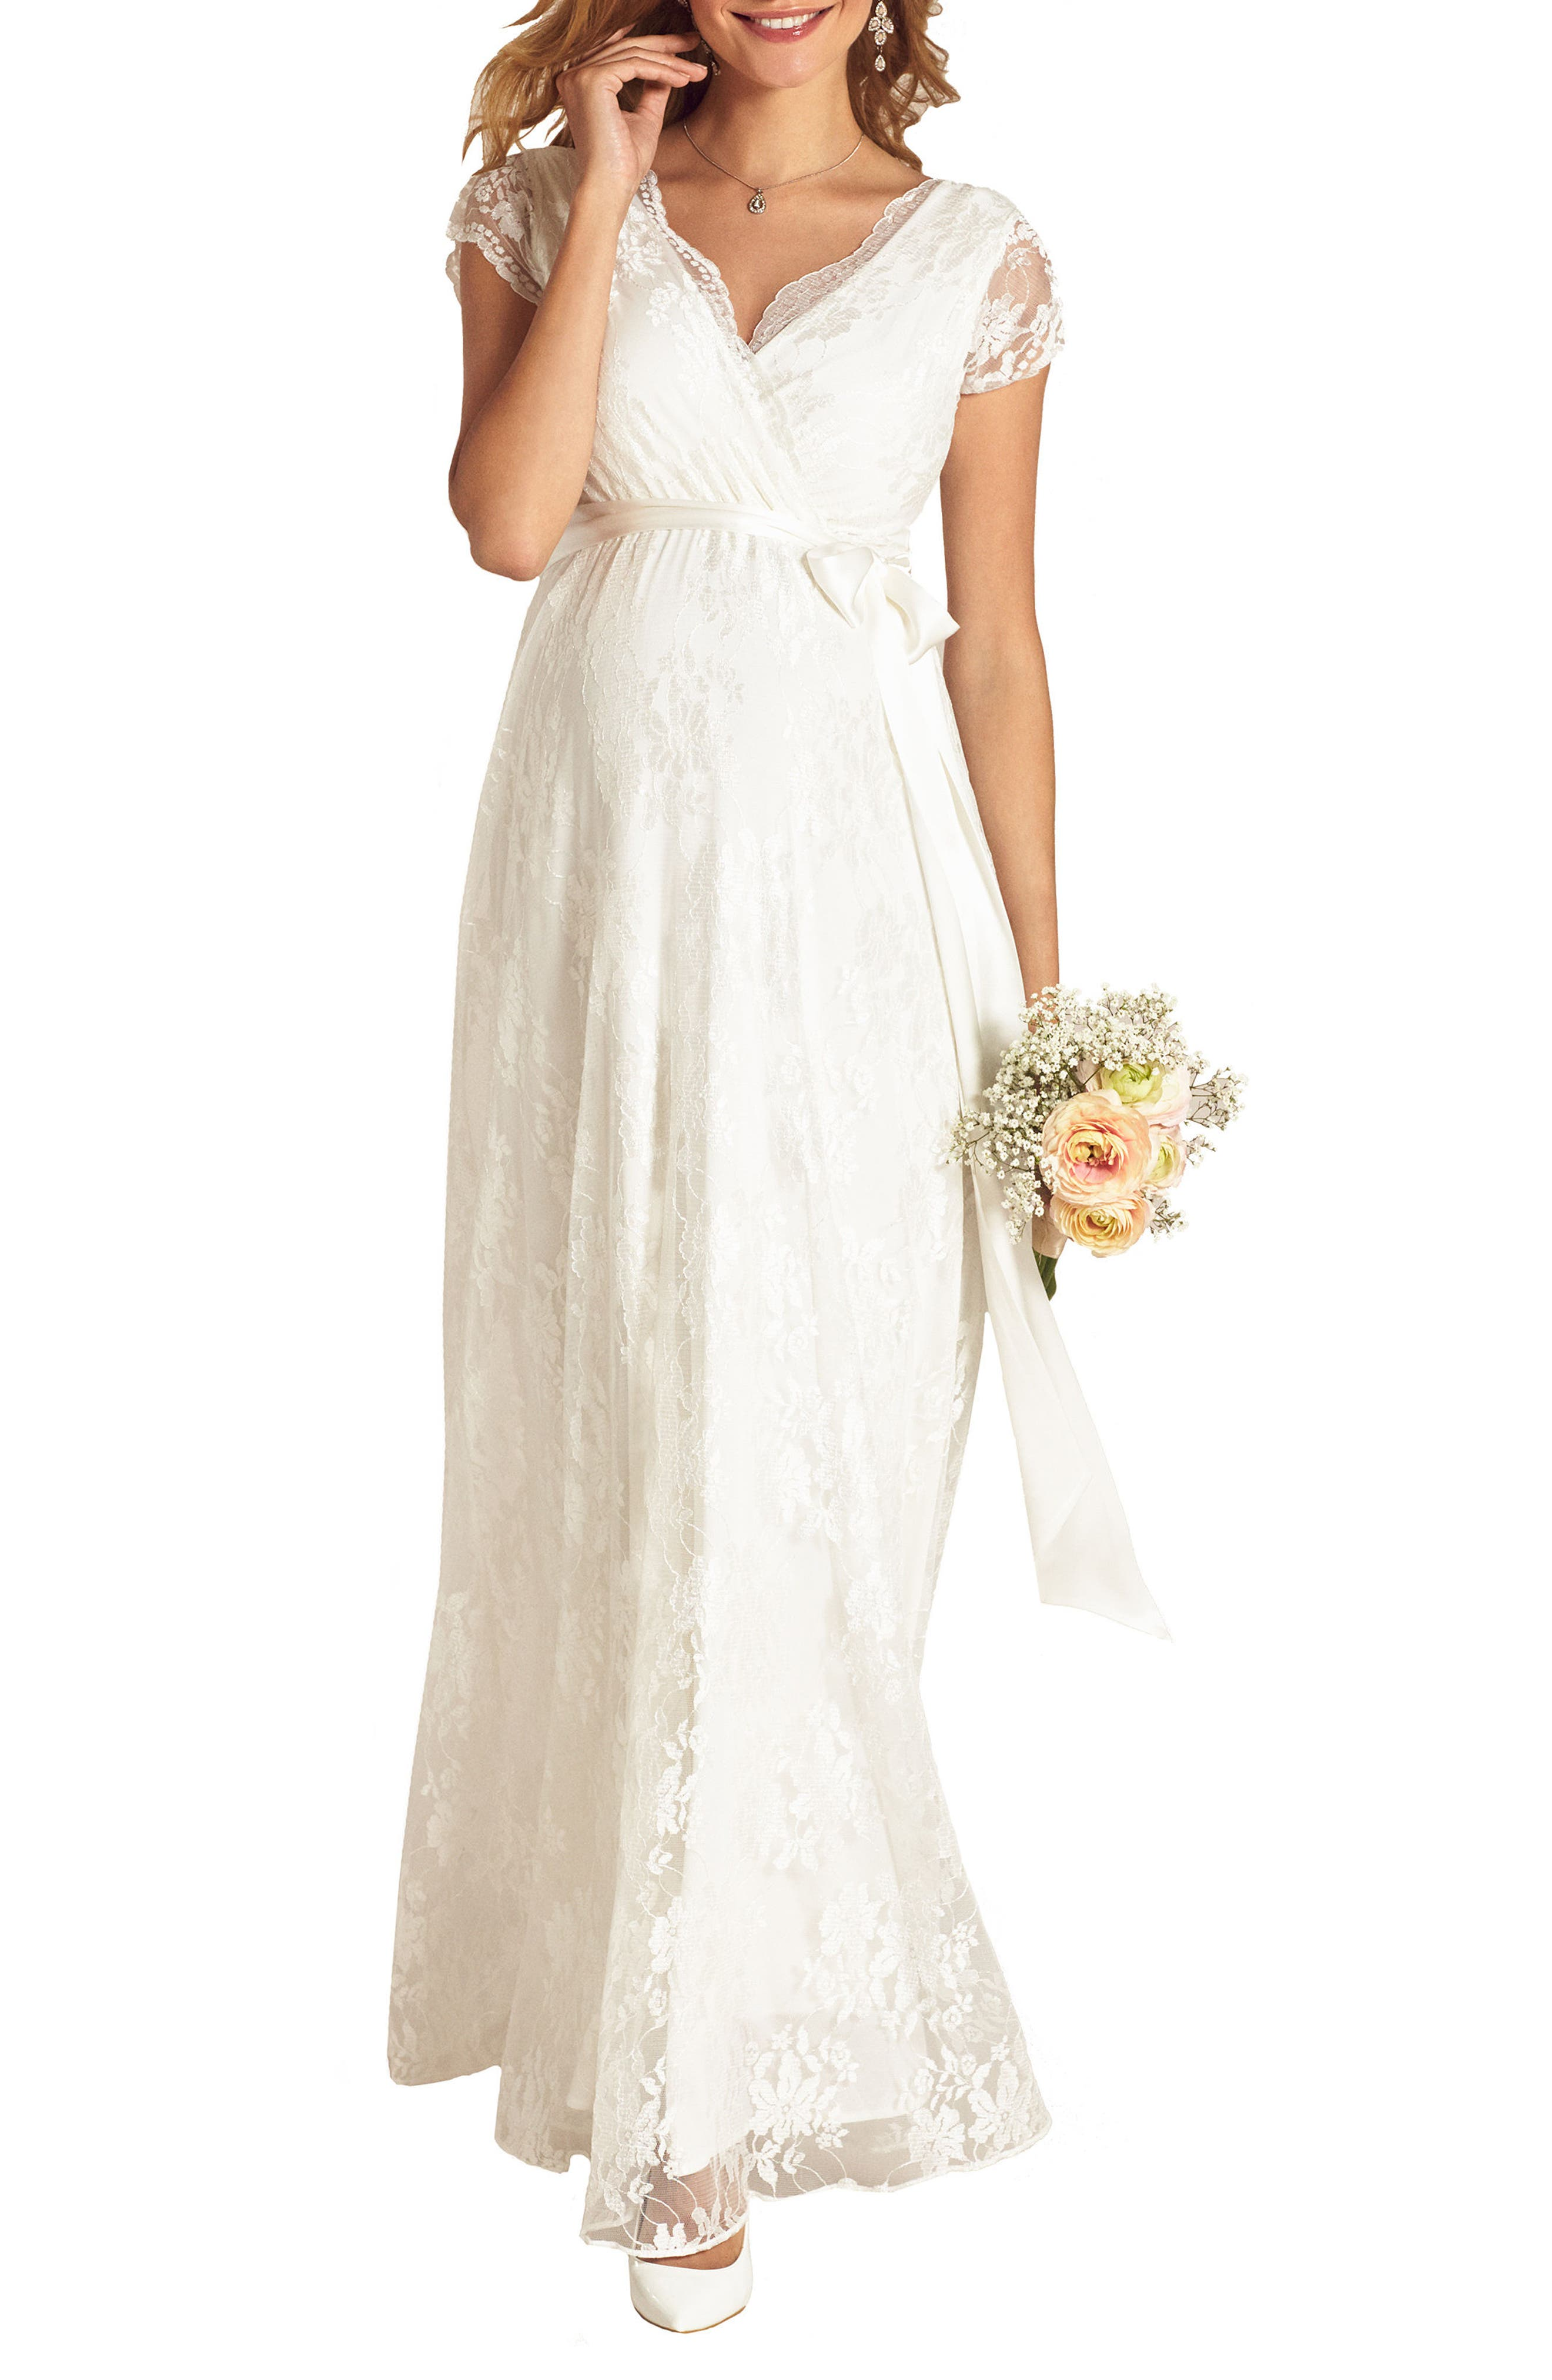 Tiffany Rose Eden Lace Maternity Gown, White